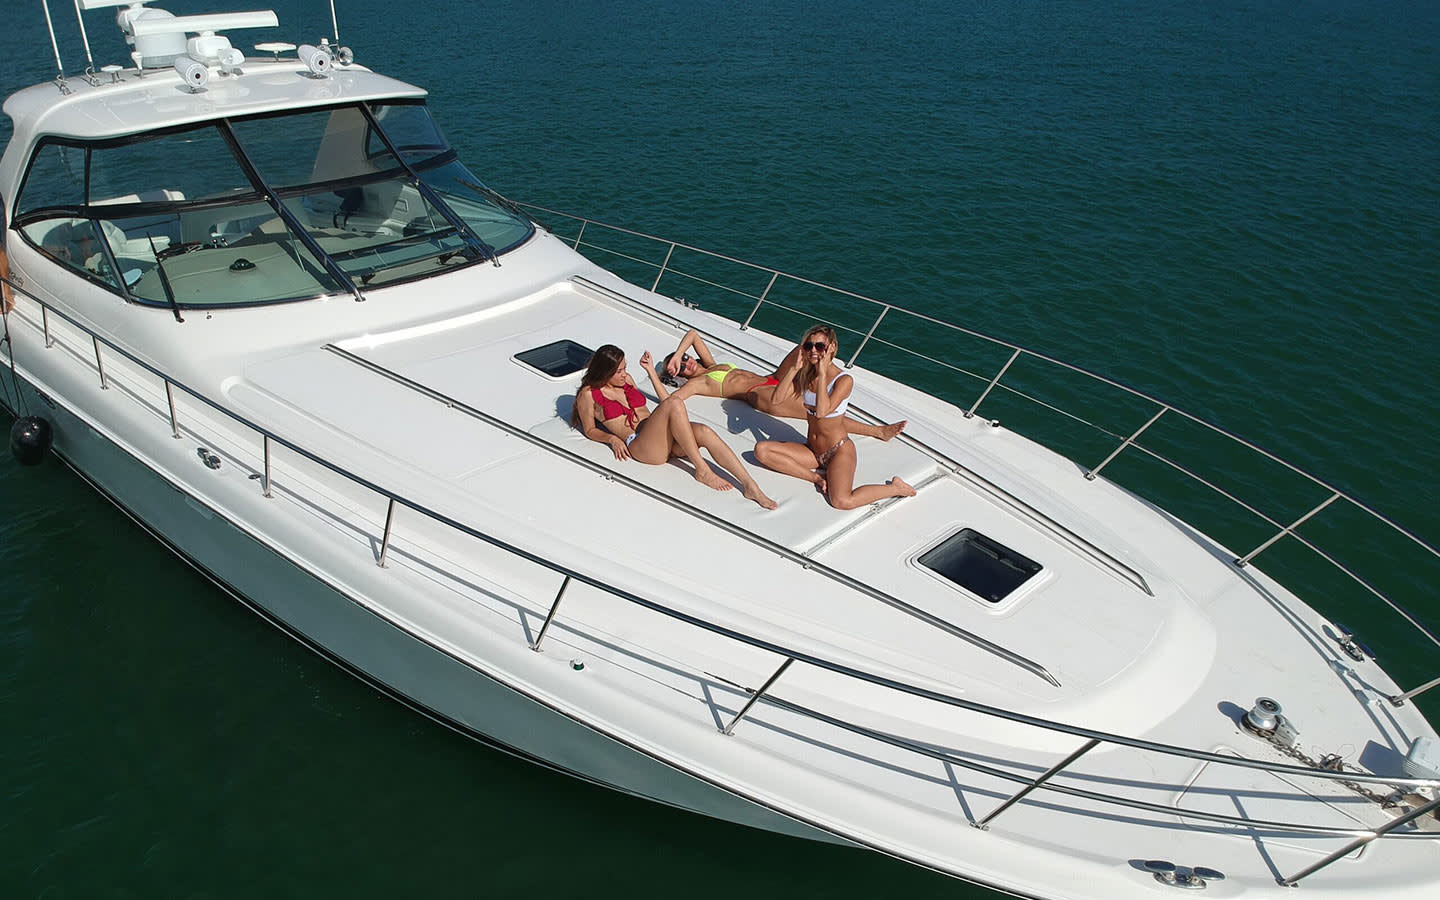 Sunset Spa & Wellness Yacht Charters 58ft Sea Ray